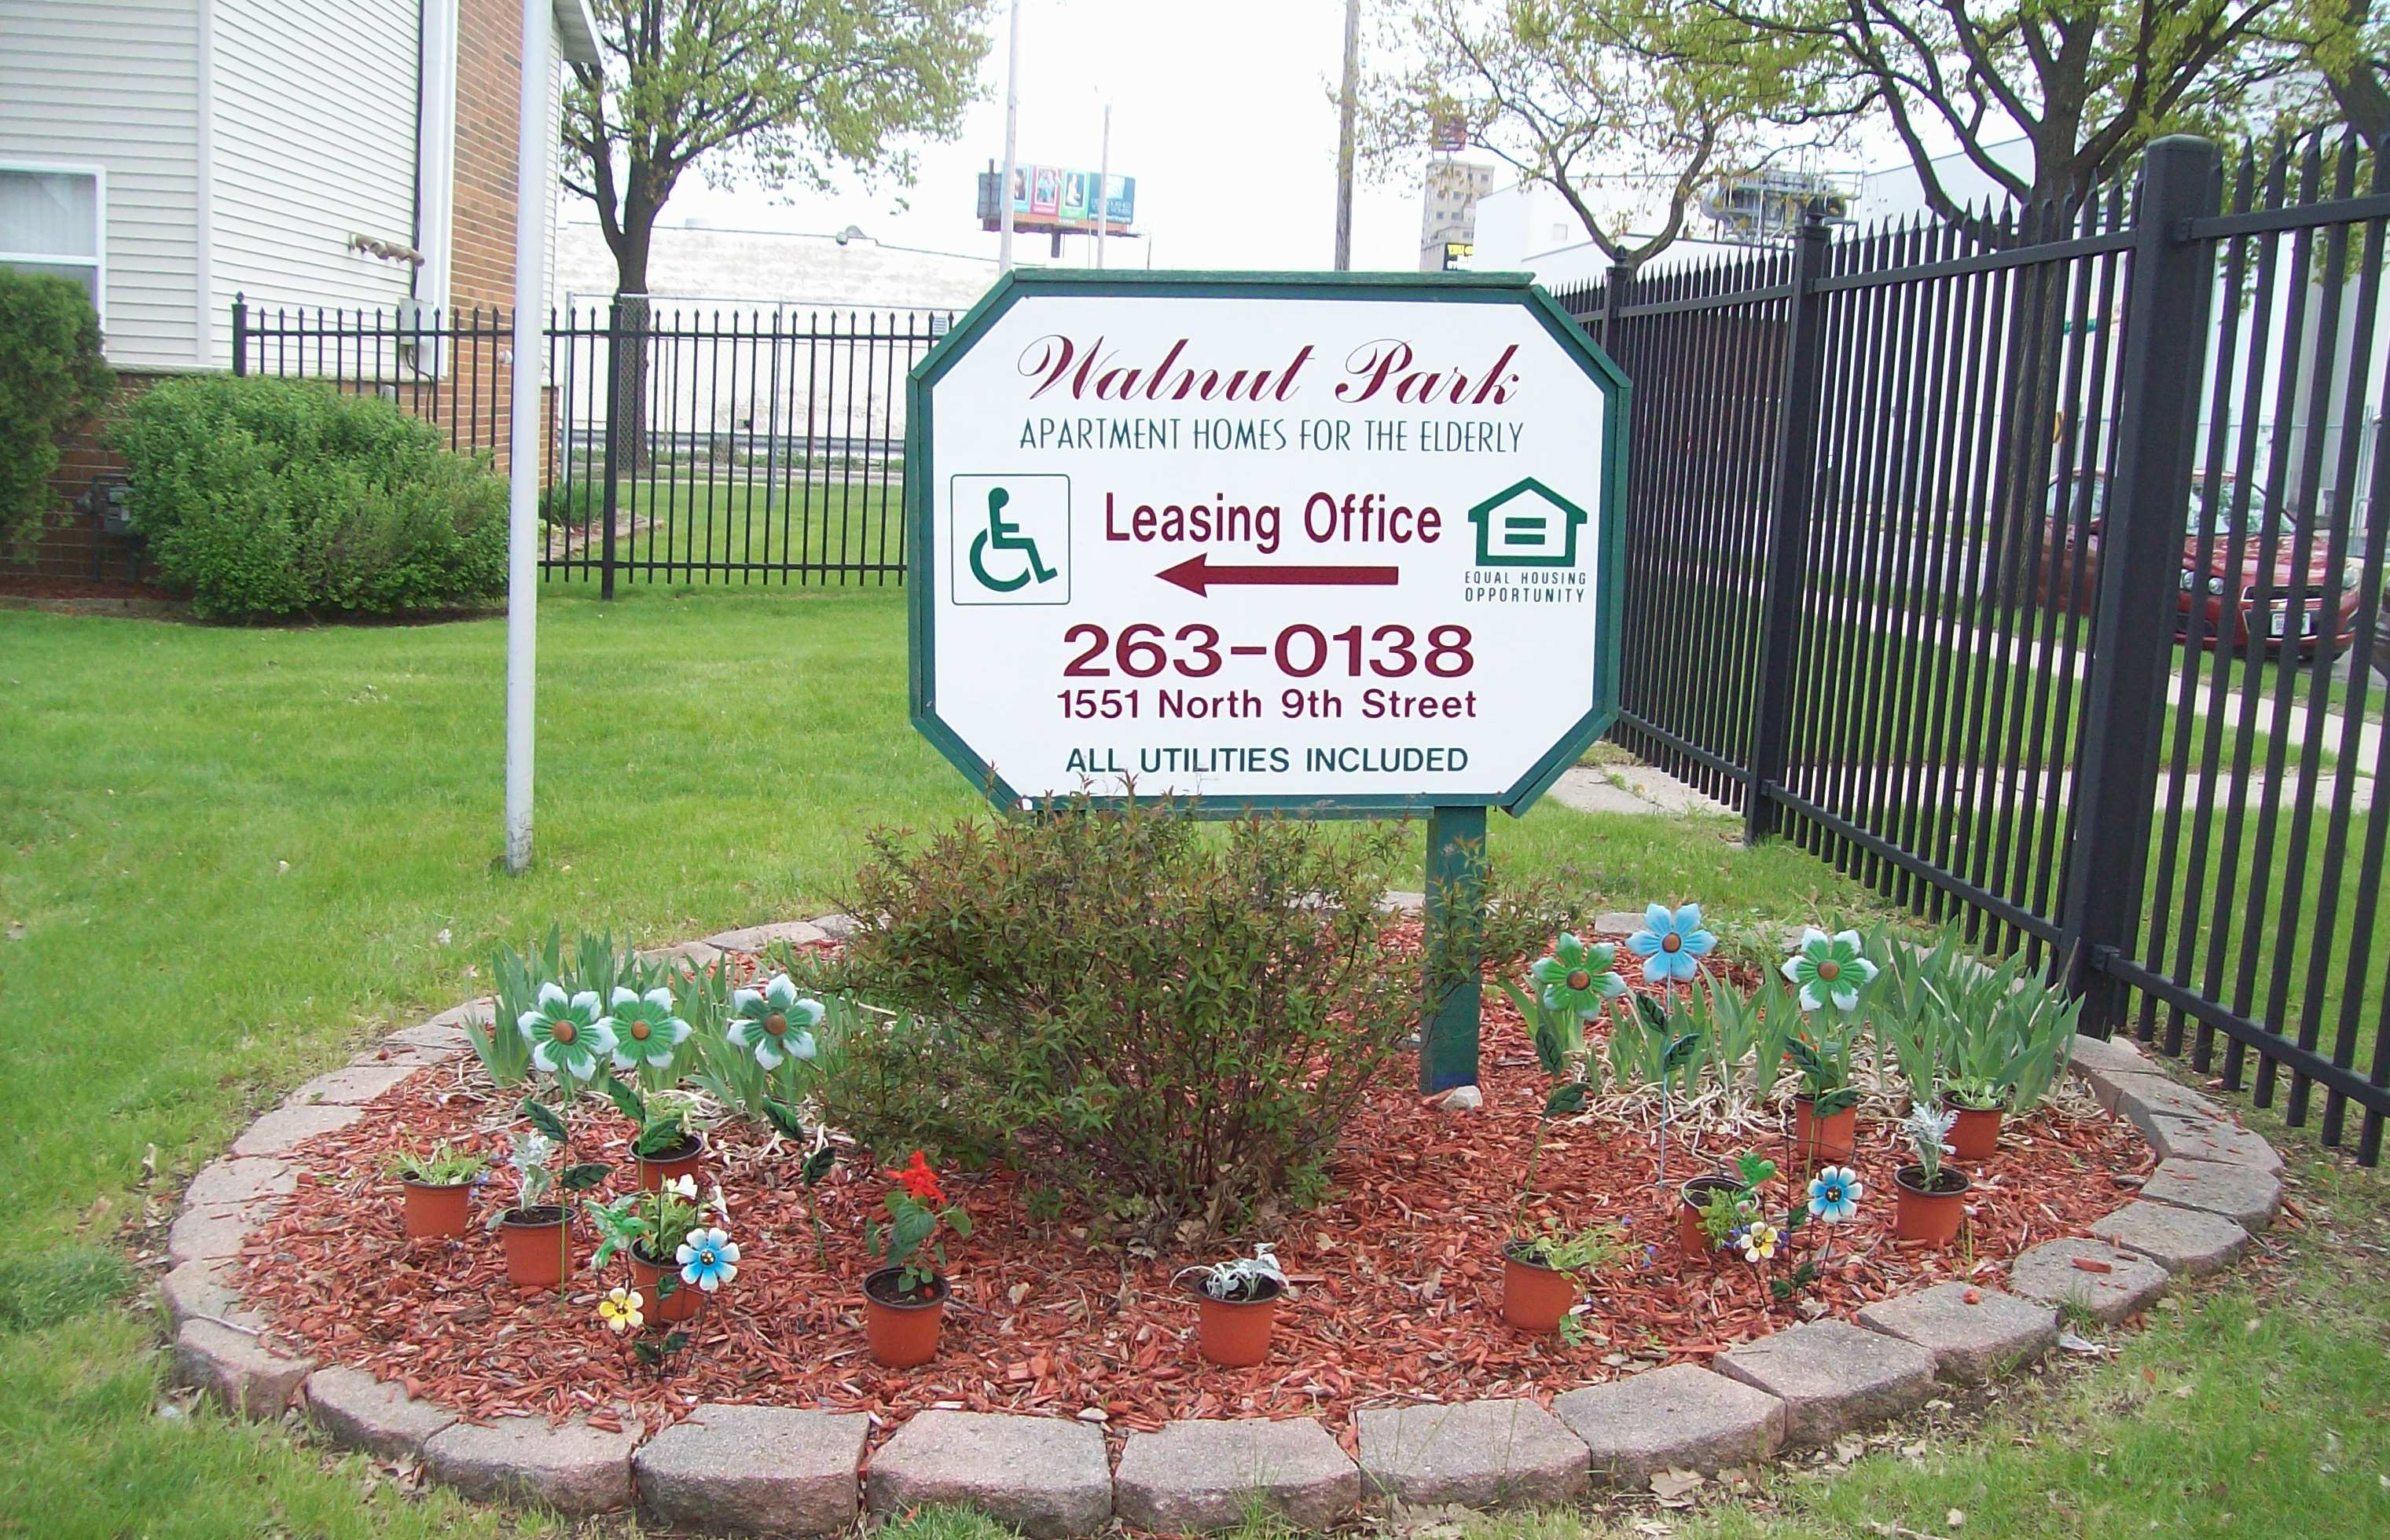 Image of Walnut Park Senior Apartments in Milwaukee, Wisconsin